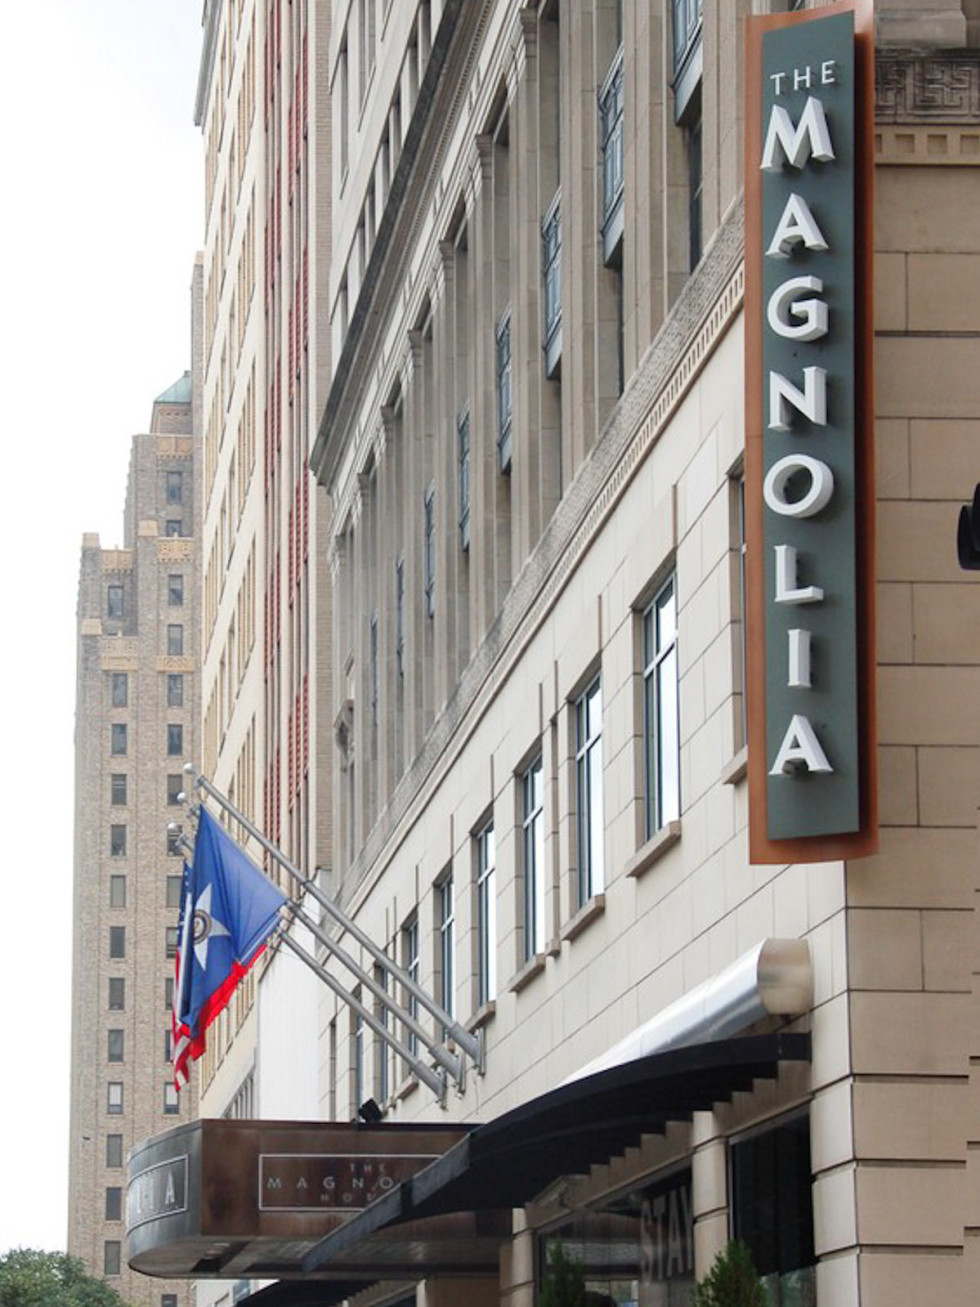 Places-Hotels/Spas-Houston Magnolia Hotel-exterior-1